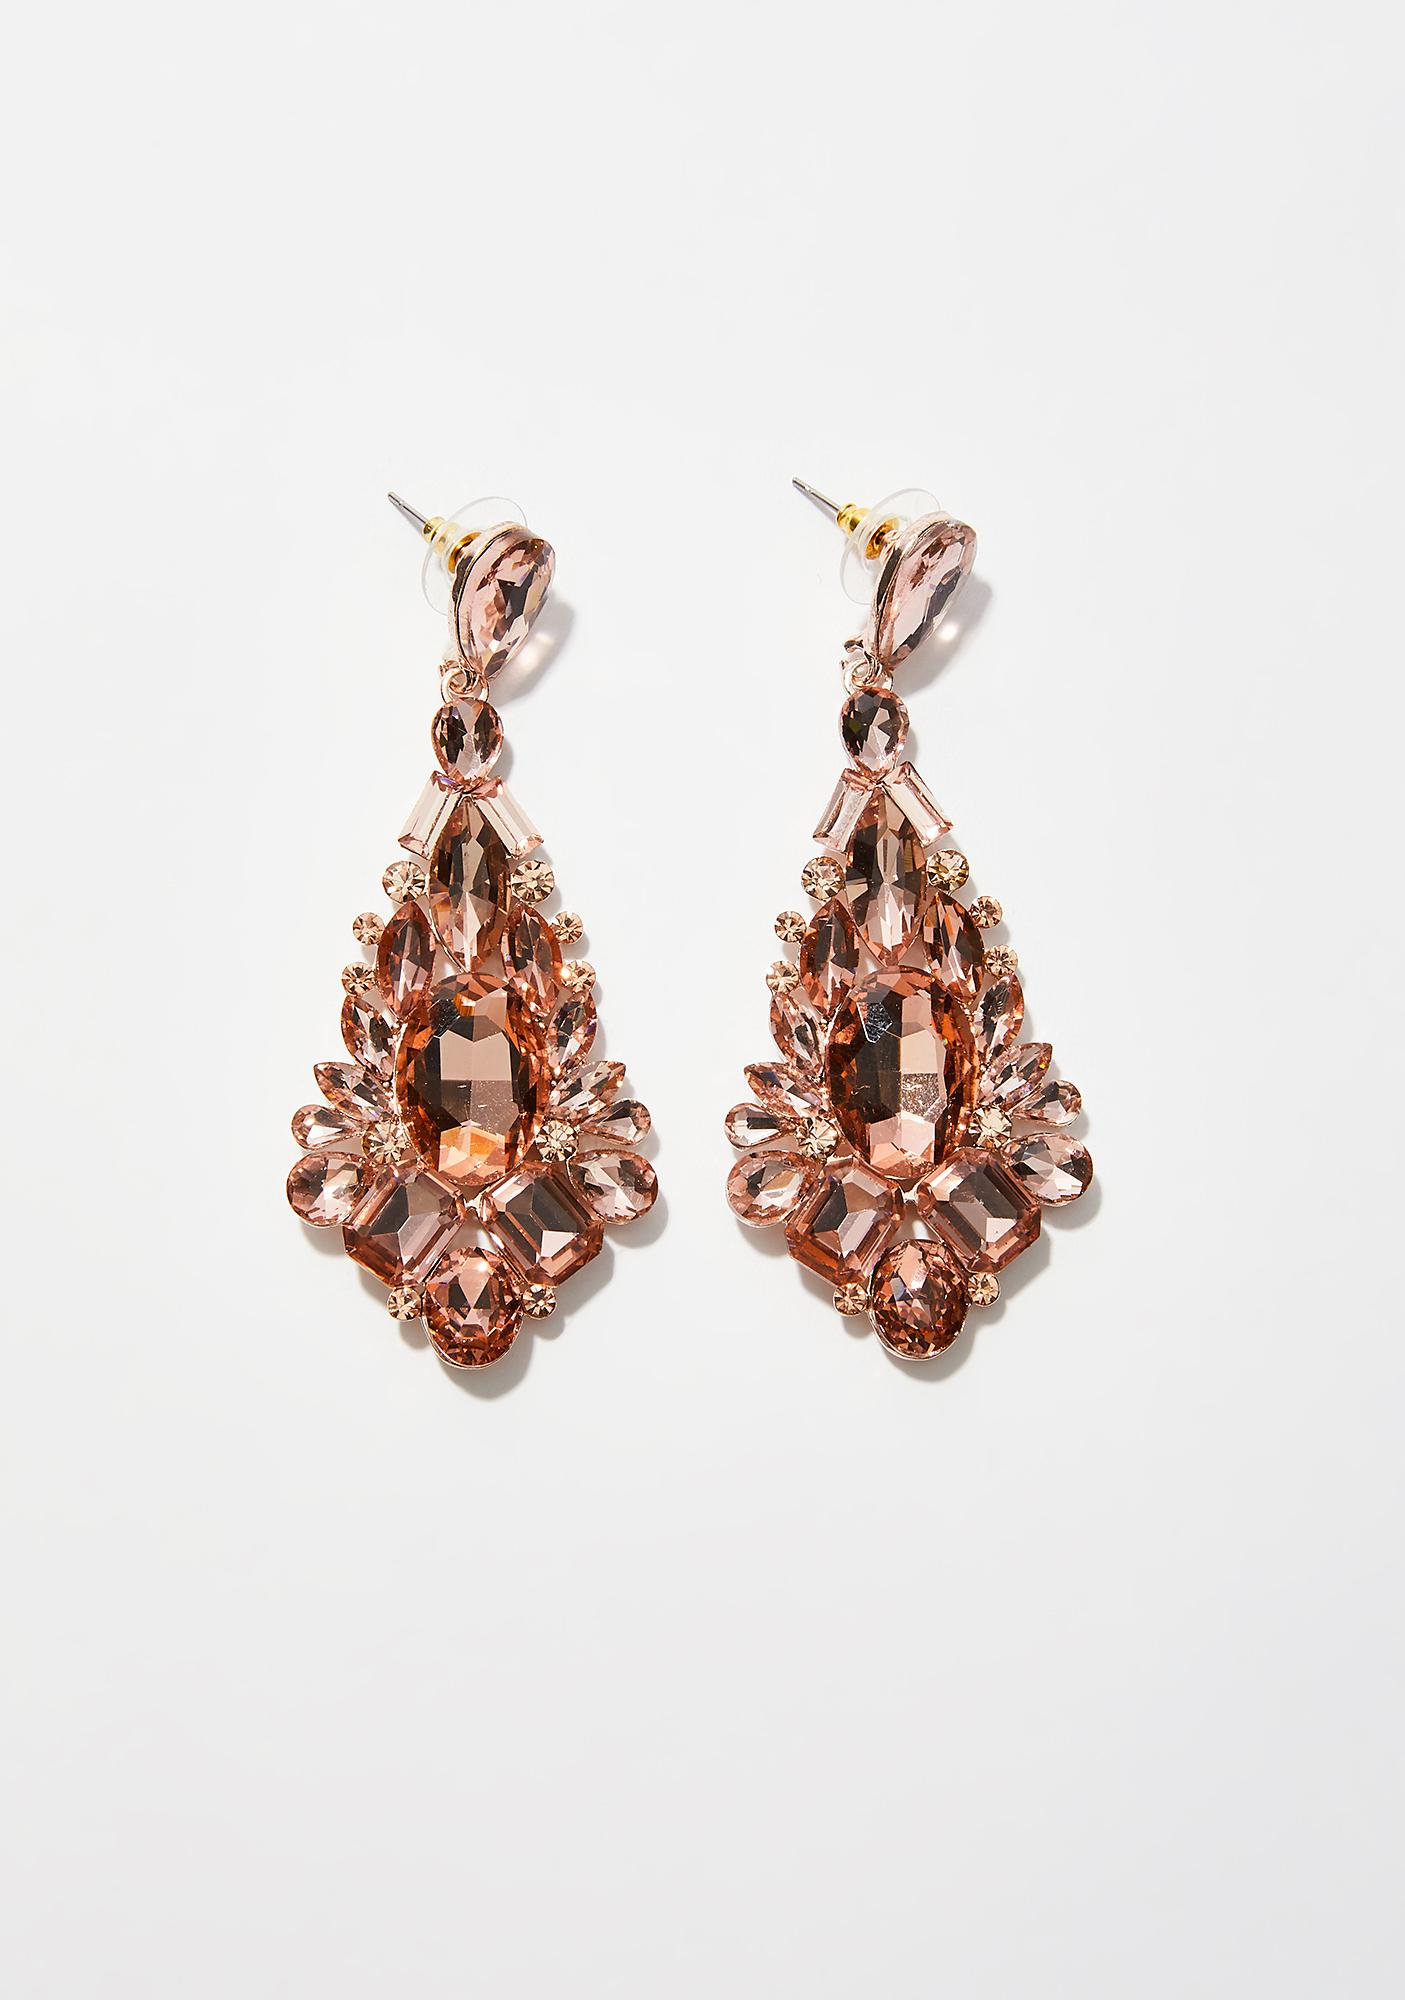 Sassy Socialite Bling Earrings